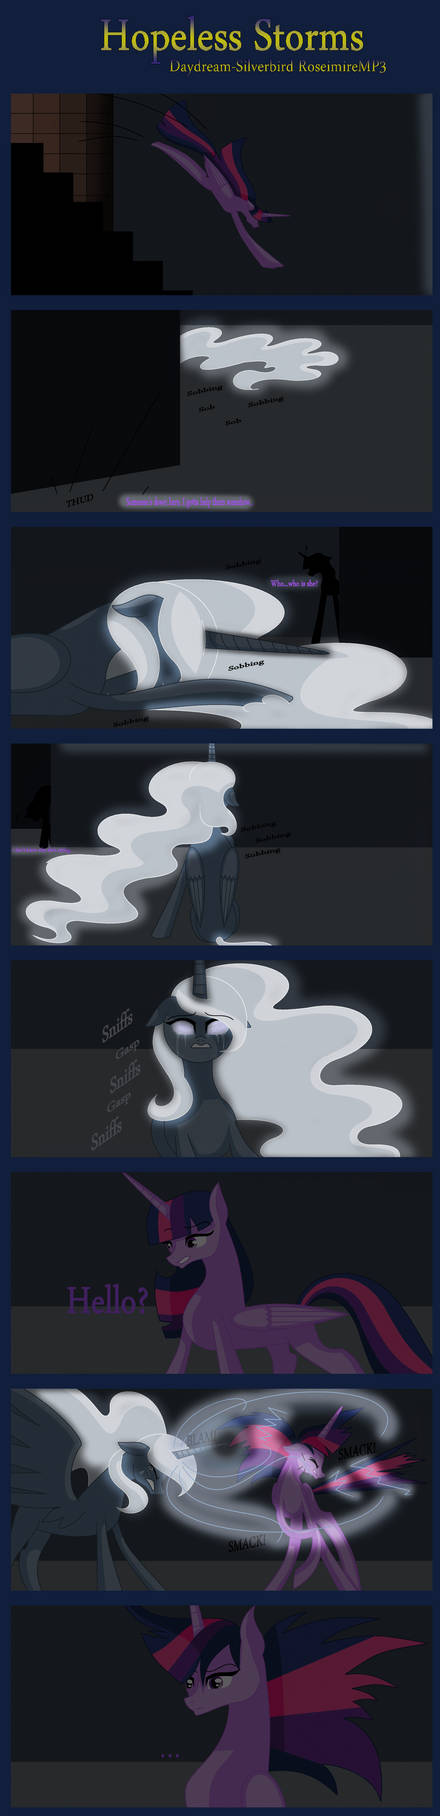 Hopeless Storms Page 24 Haunted Memories by Daydream-Silverbird